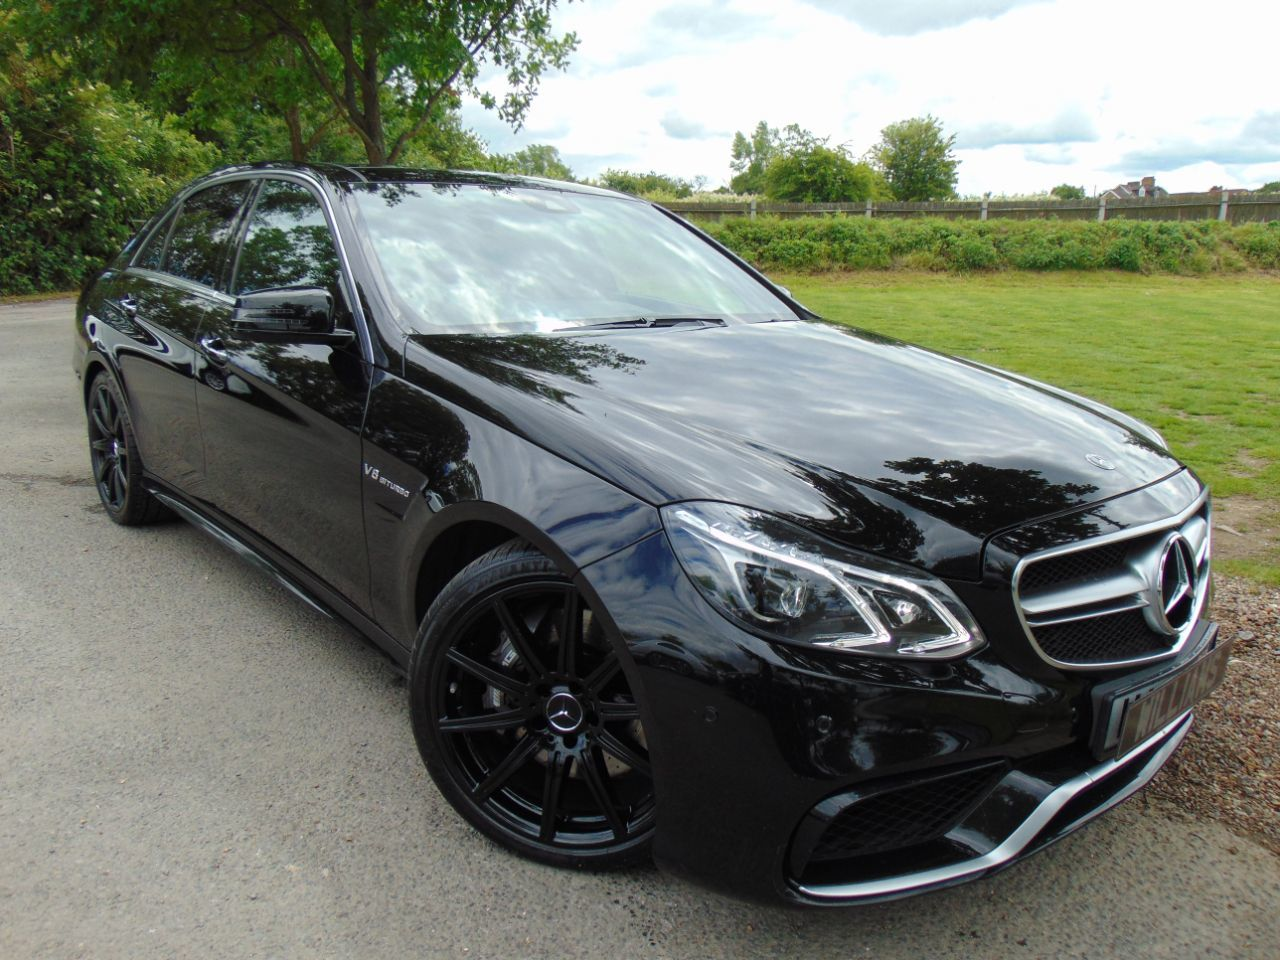 Mercedes-Benz E Class 5.5 E63 AMG MCT 4dr (Pan Roof! 360 Camera! +++) Saloon Petrol Obsidian Black Metallic